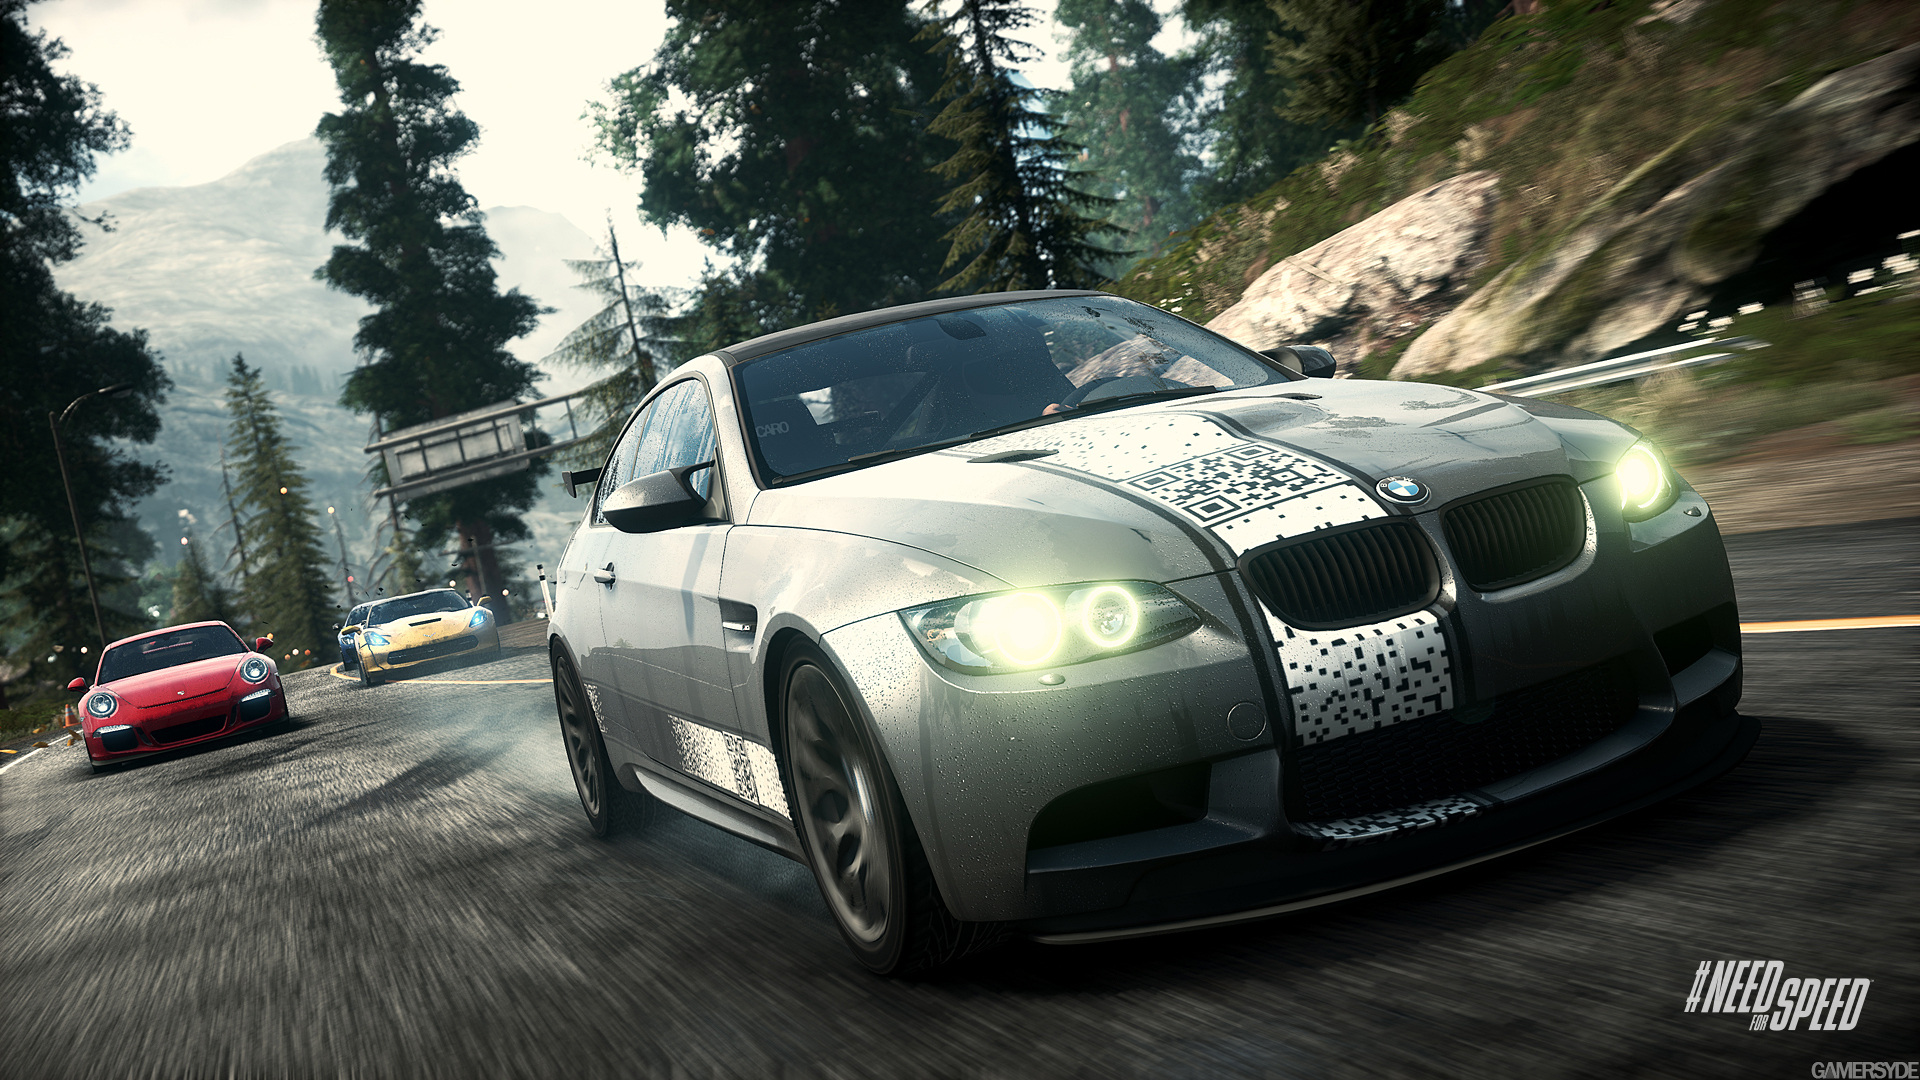 Need for Speed rivals trailer & images - Gamersyde